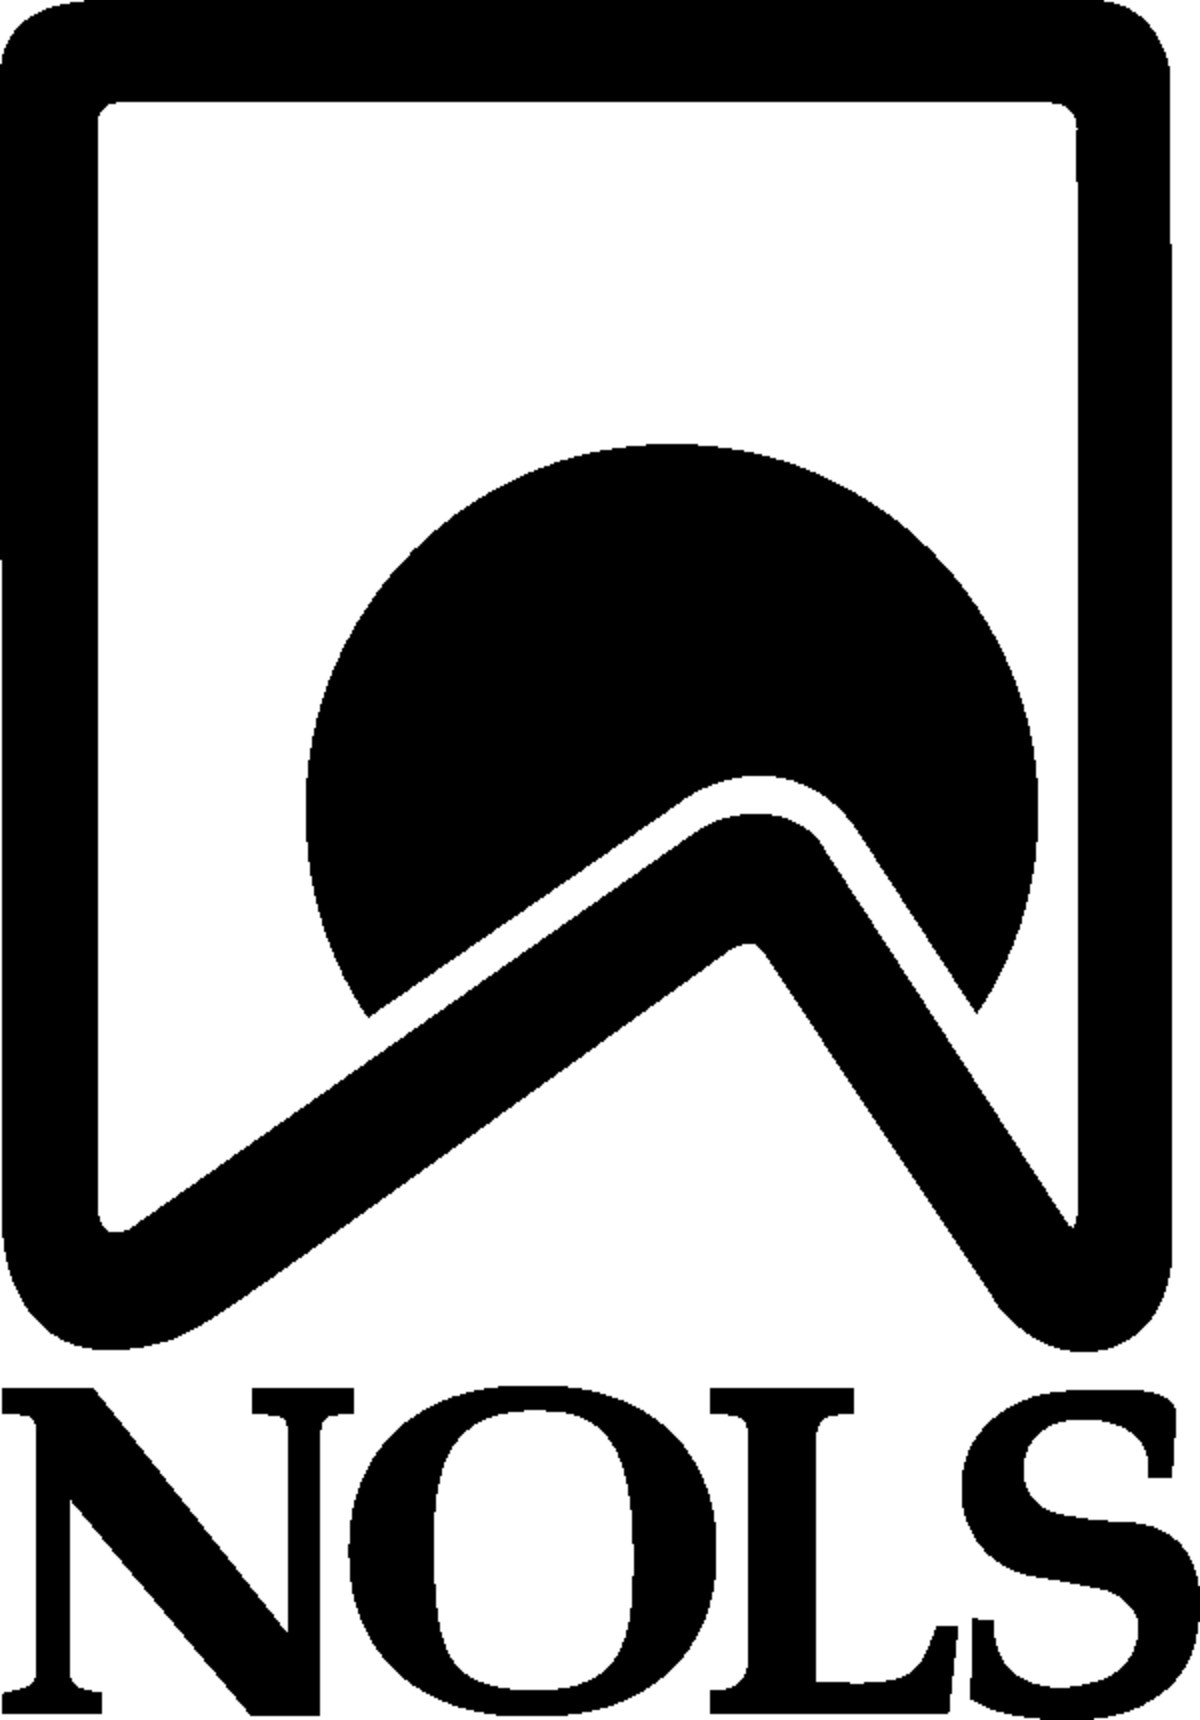 National Outdoor Leadership School - Wikipedia